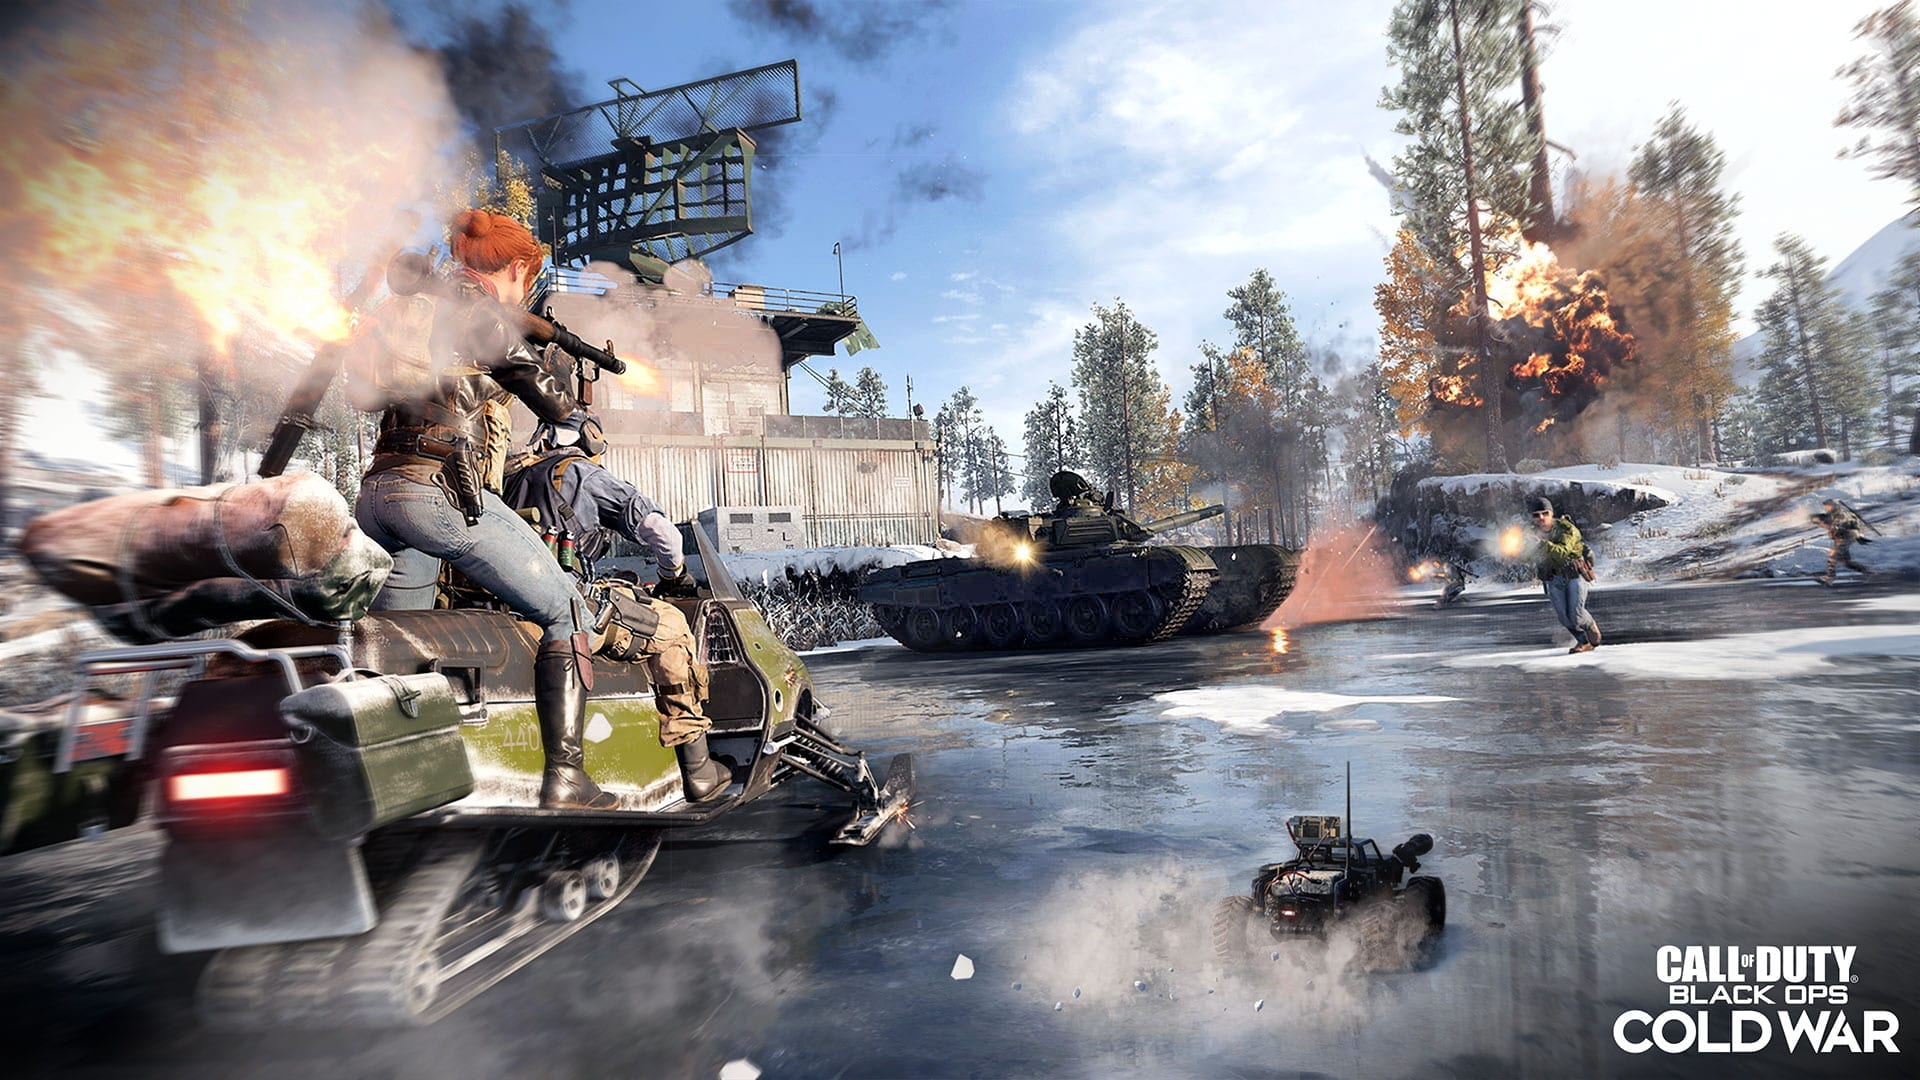 Call of Duty: Black Ops Cold War Multiplayer Adds Health Bars